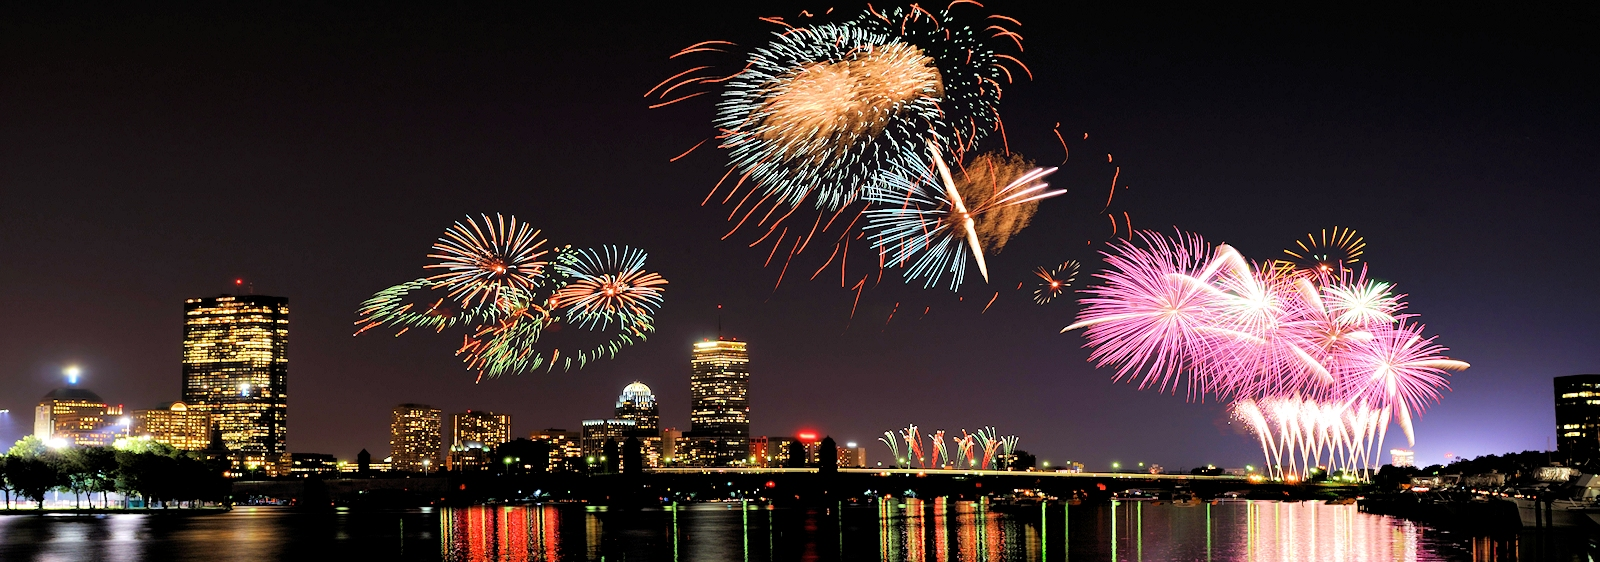 Boston Massachusetts Fireworks July 4th